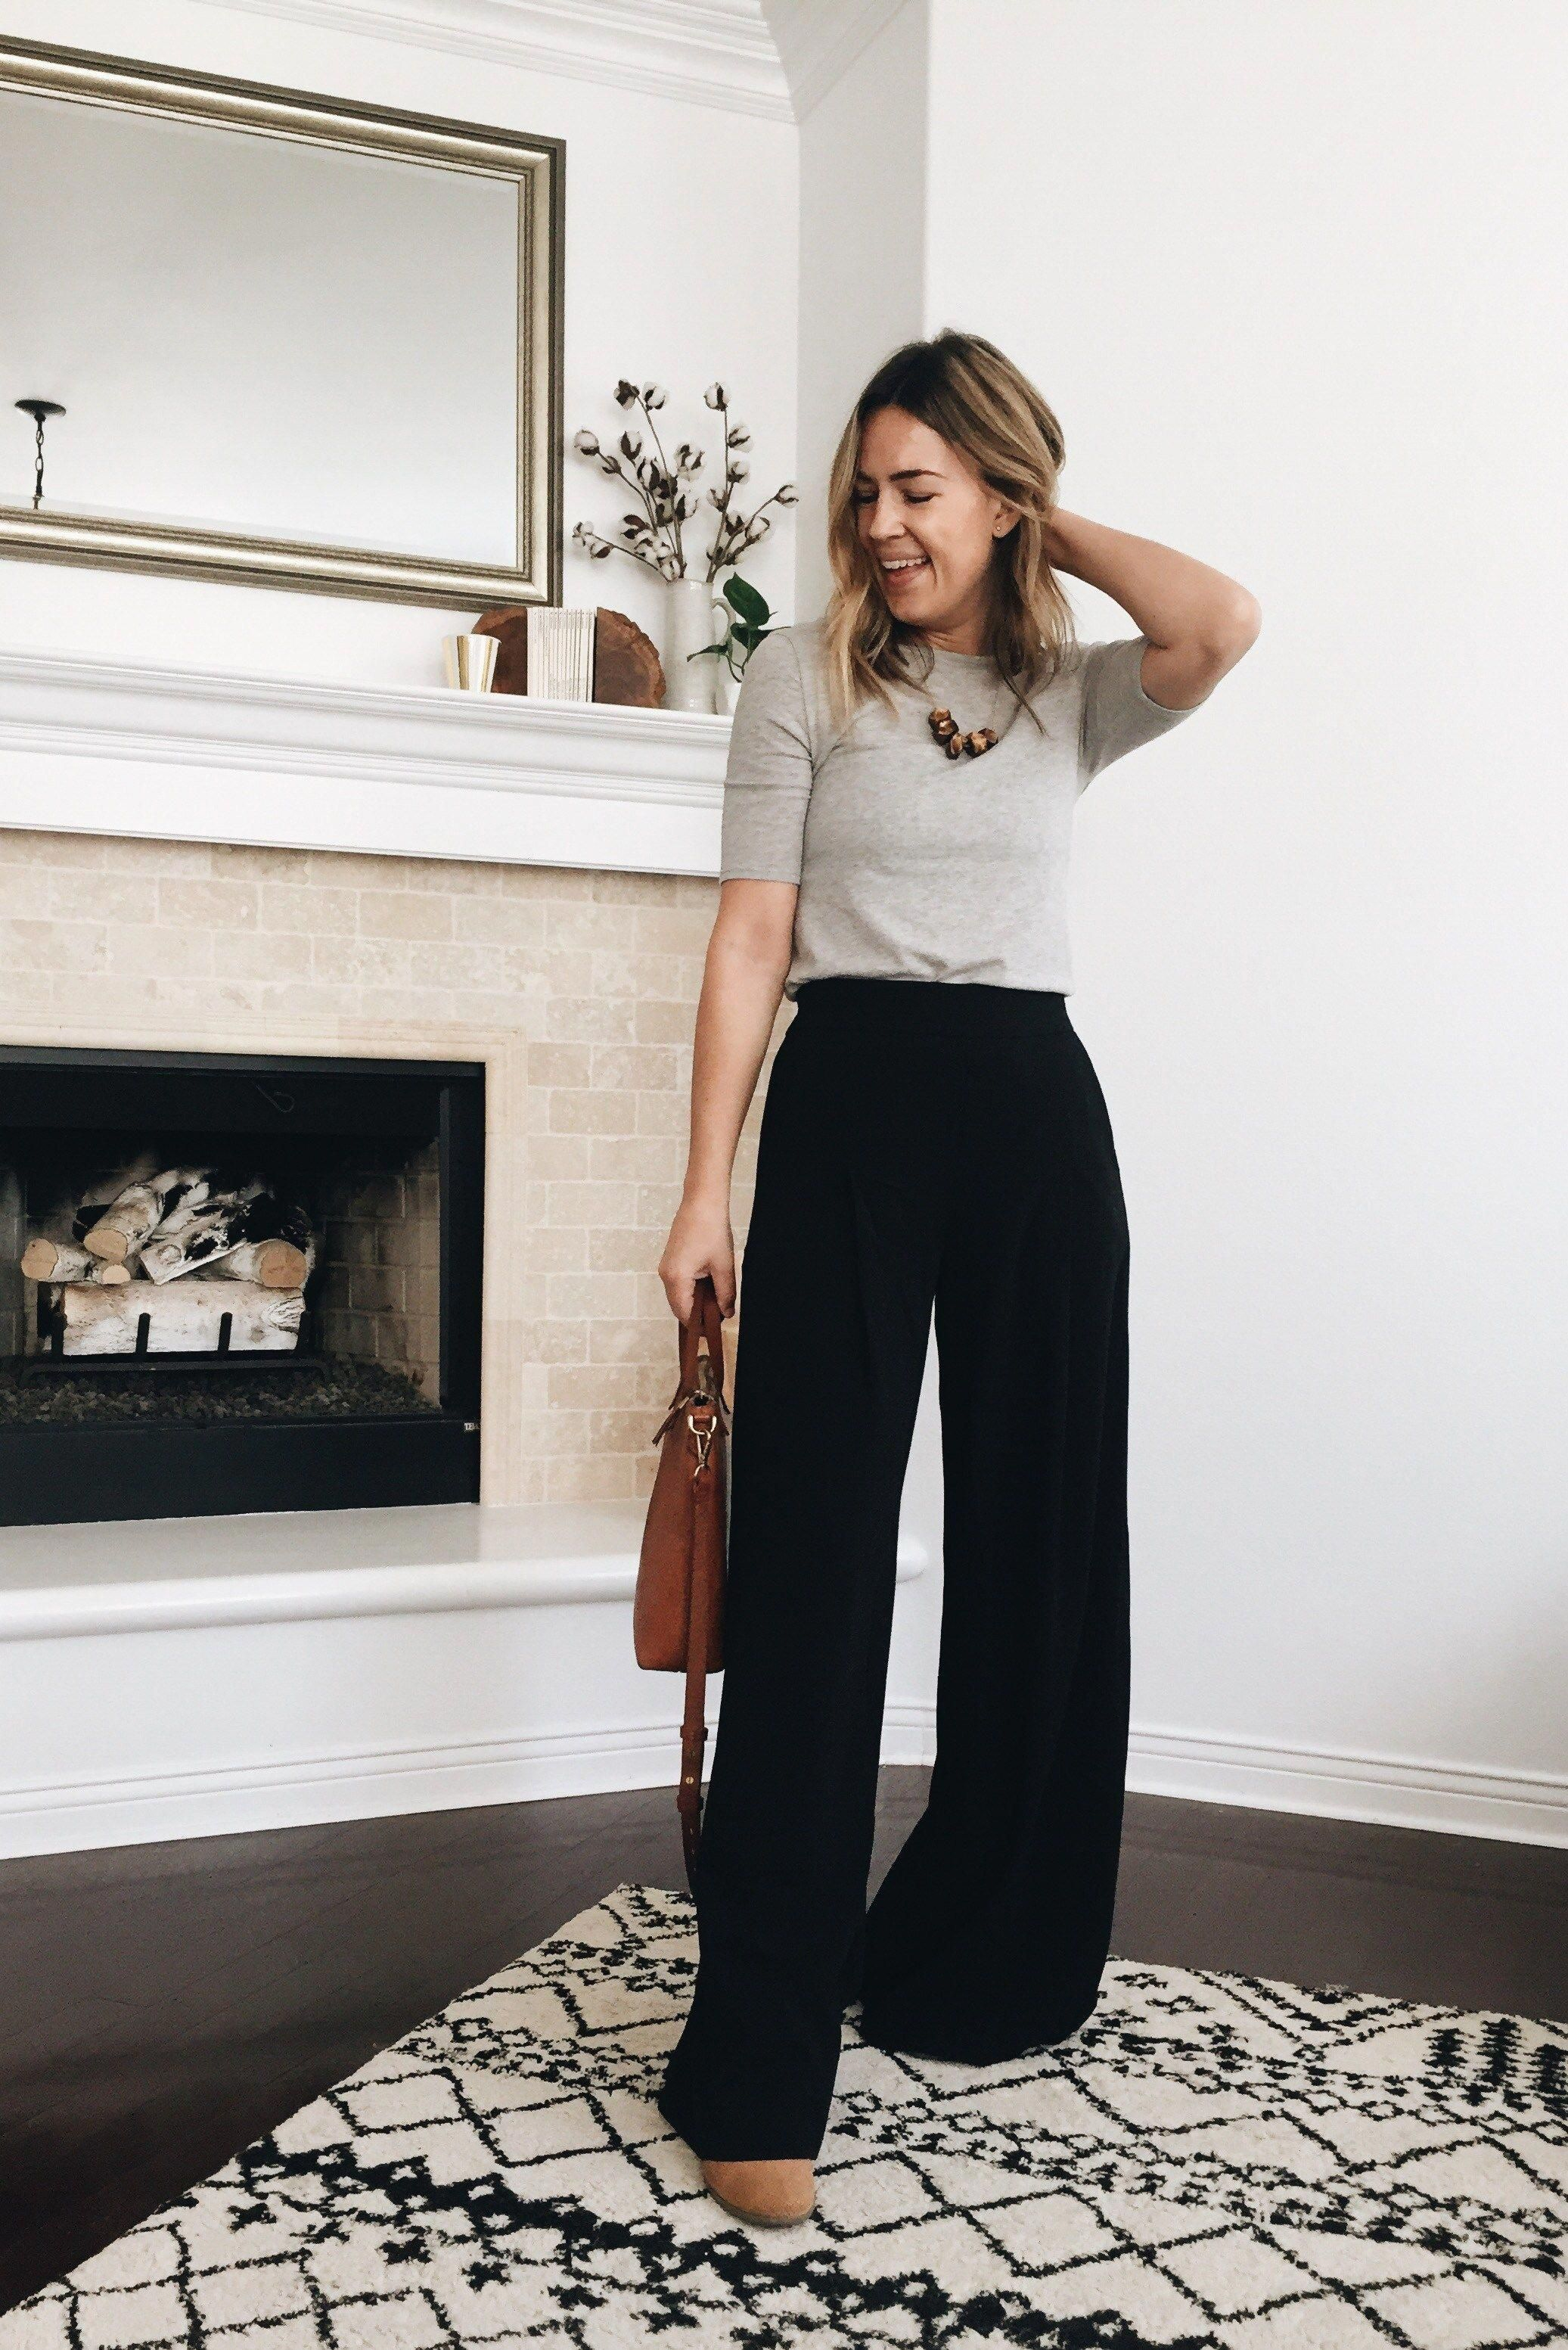 Work Outfits On A Budget Workoutfits Stylish Summer Outfits Wide Pants Outfit Wide Leg Trousers Outfit